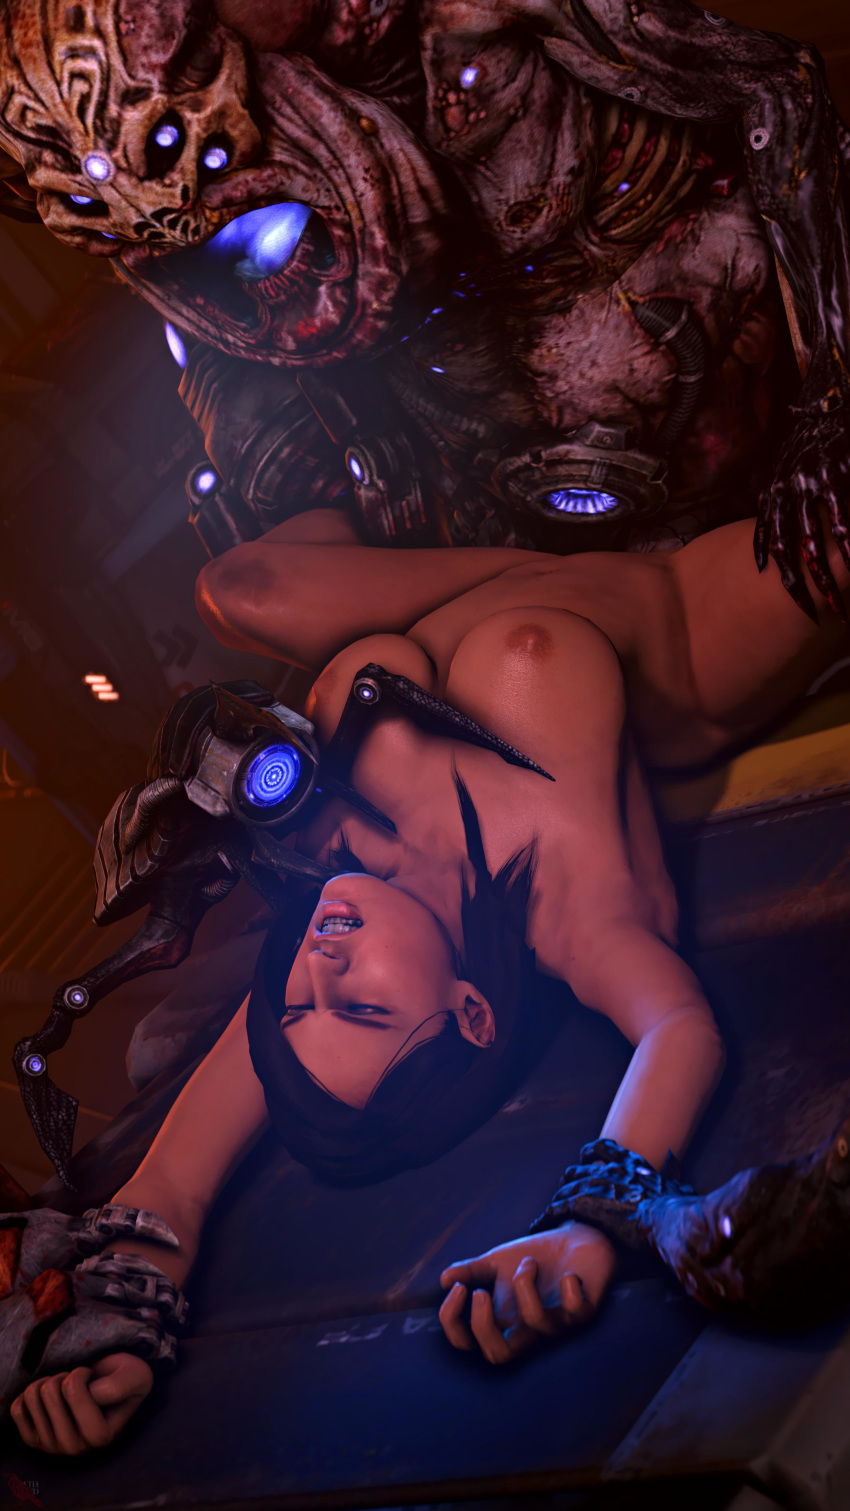 female effect porn mass shepard Bigfoot is real and he tried to eat my ass hat